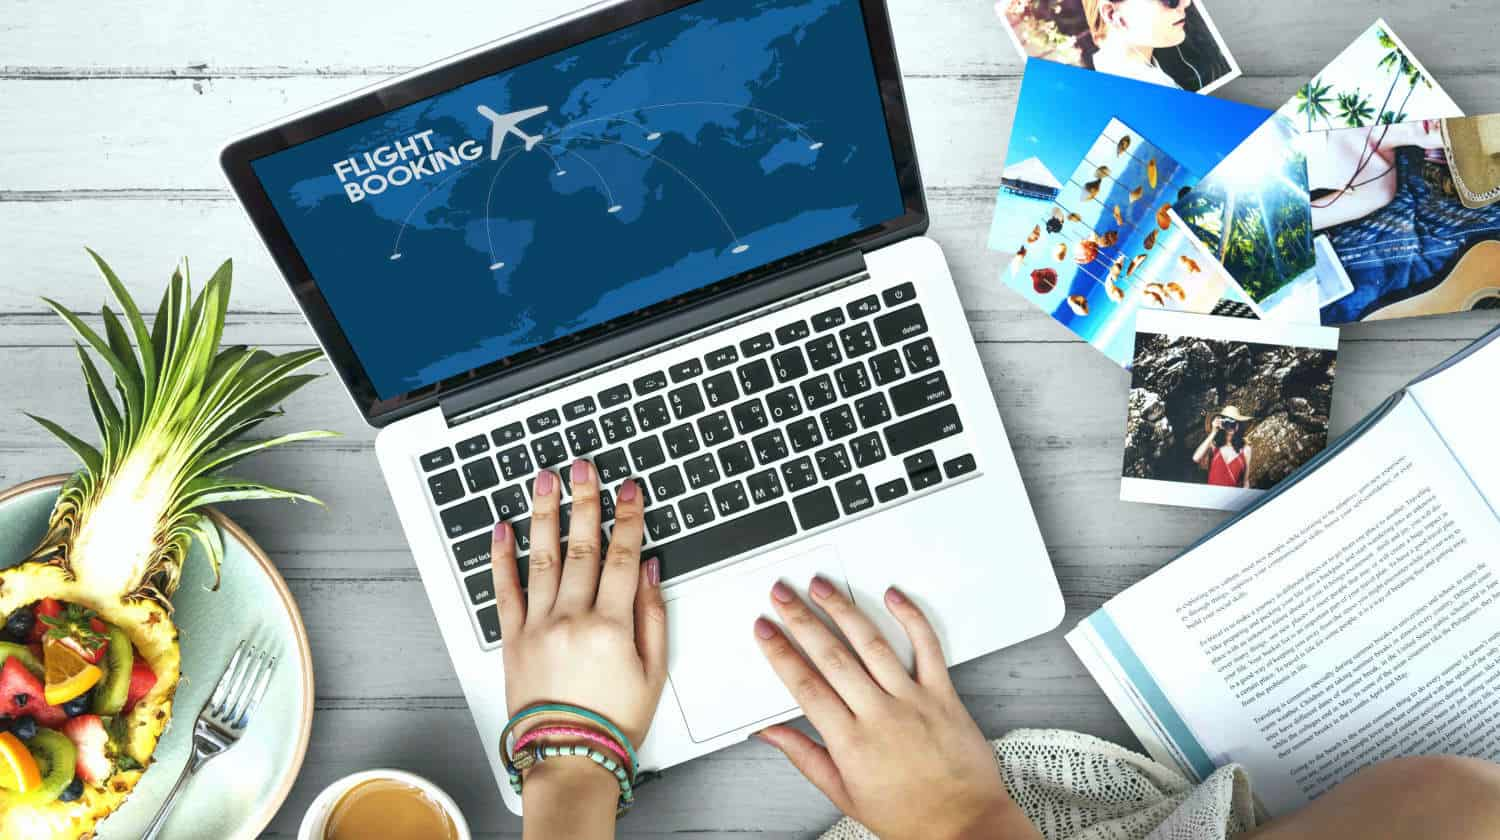 Feature | Flight booking reservation travel destination | How to Find and Use an Expedia Coupon